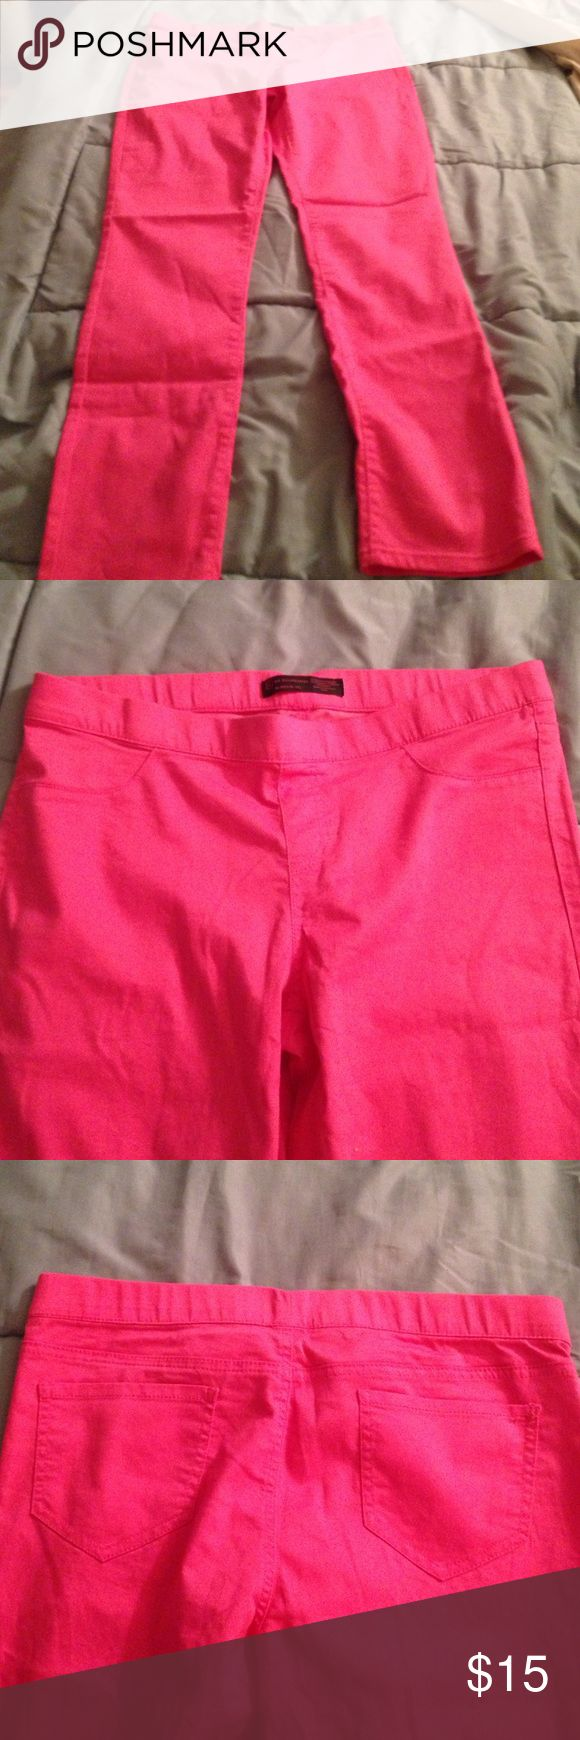 Pink leggings Pink legging with pockets on both front and back. Elastic waste band Pants Leggings